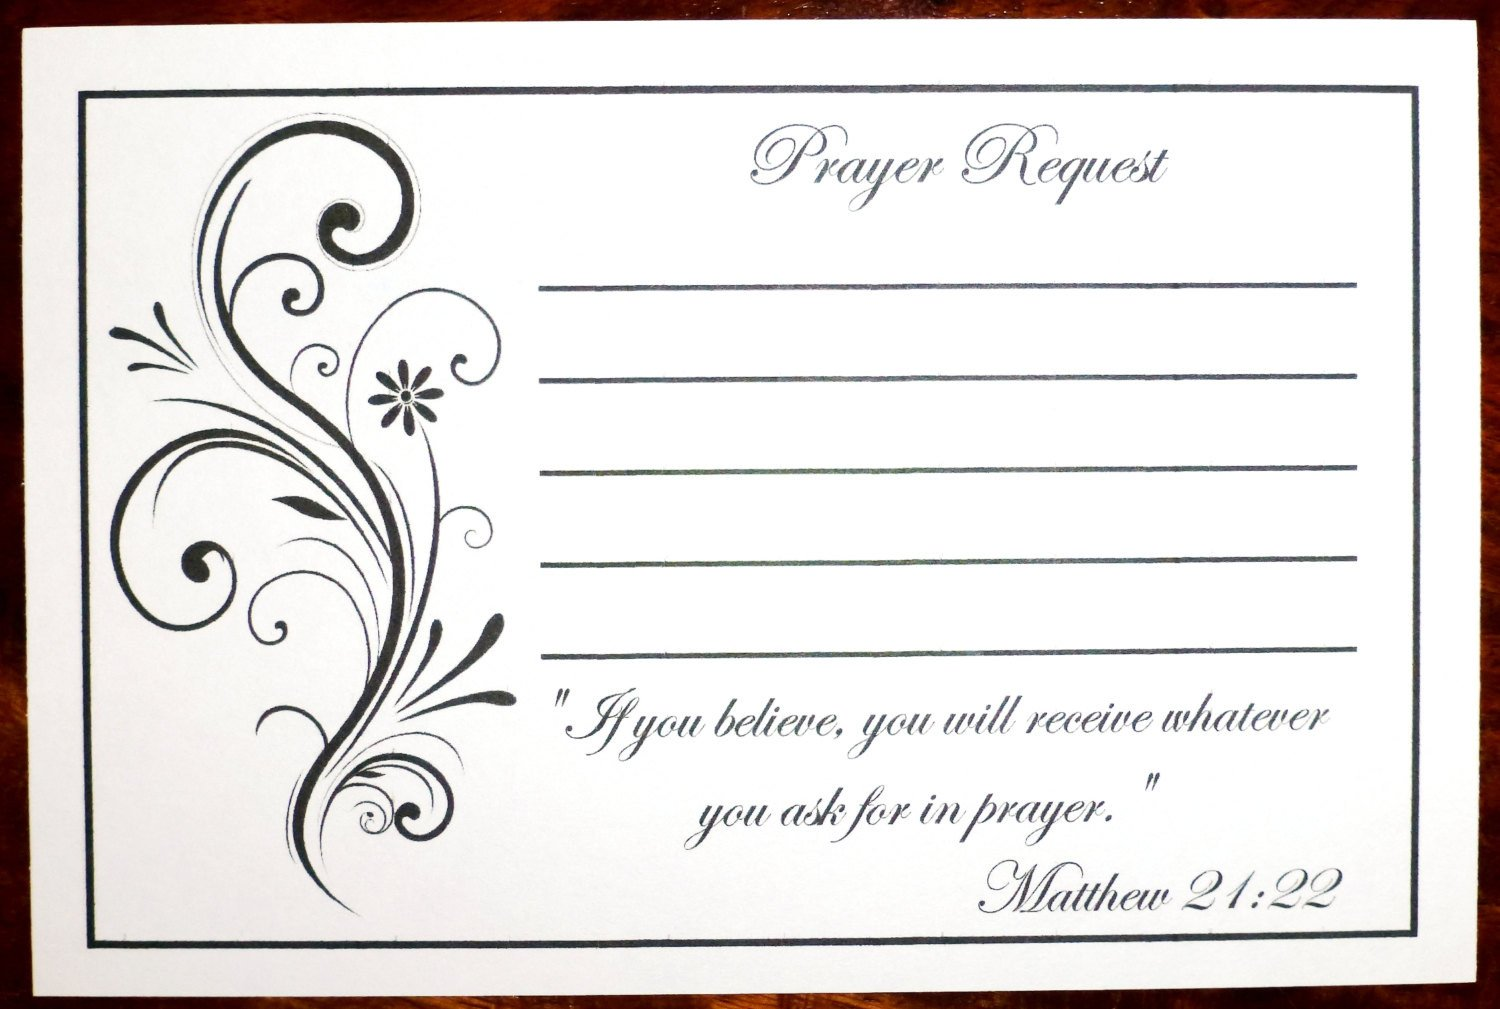 Blank Prayer Card Template Pack Of 100 Prayer Request Cards